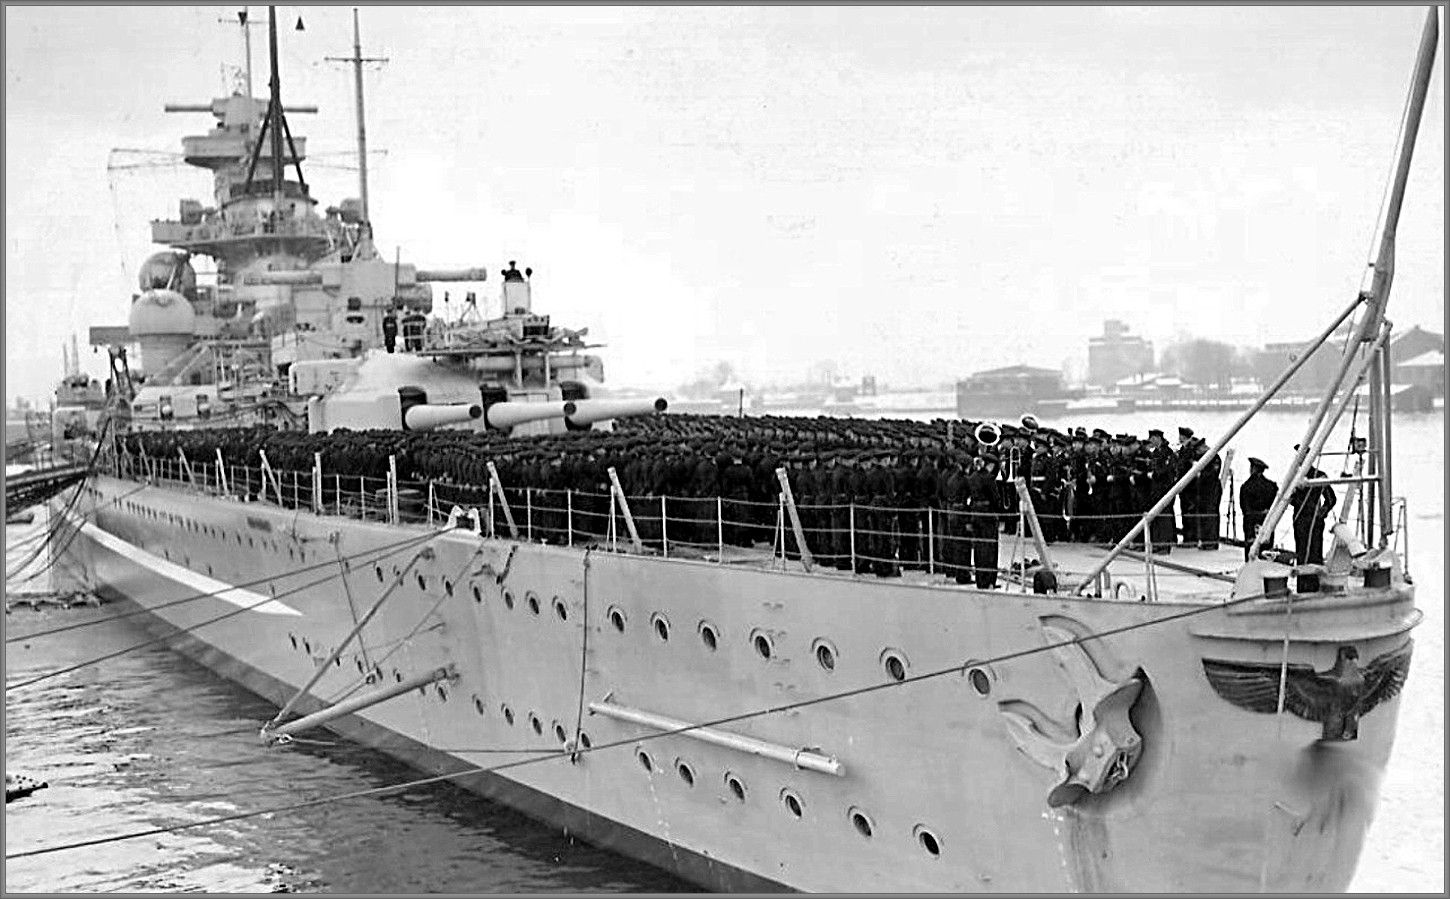 German battlecruiser Scharnhorst with the ship's company on deck, January 7th 1939.